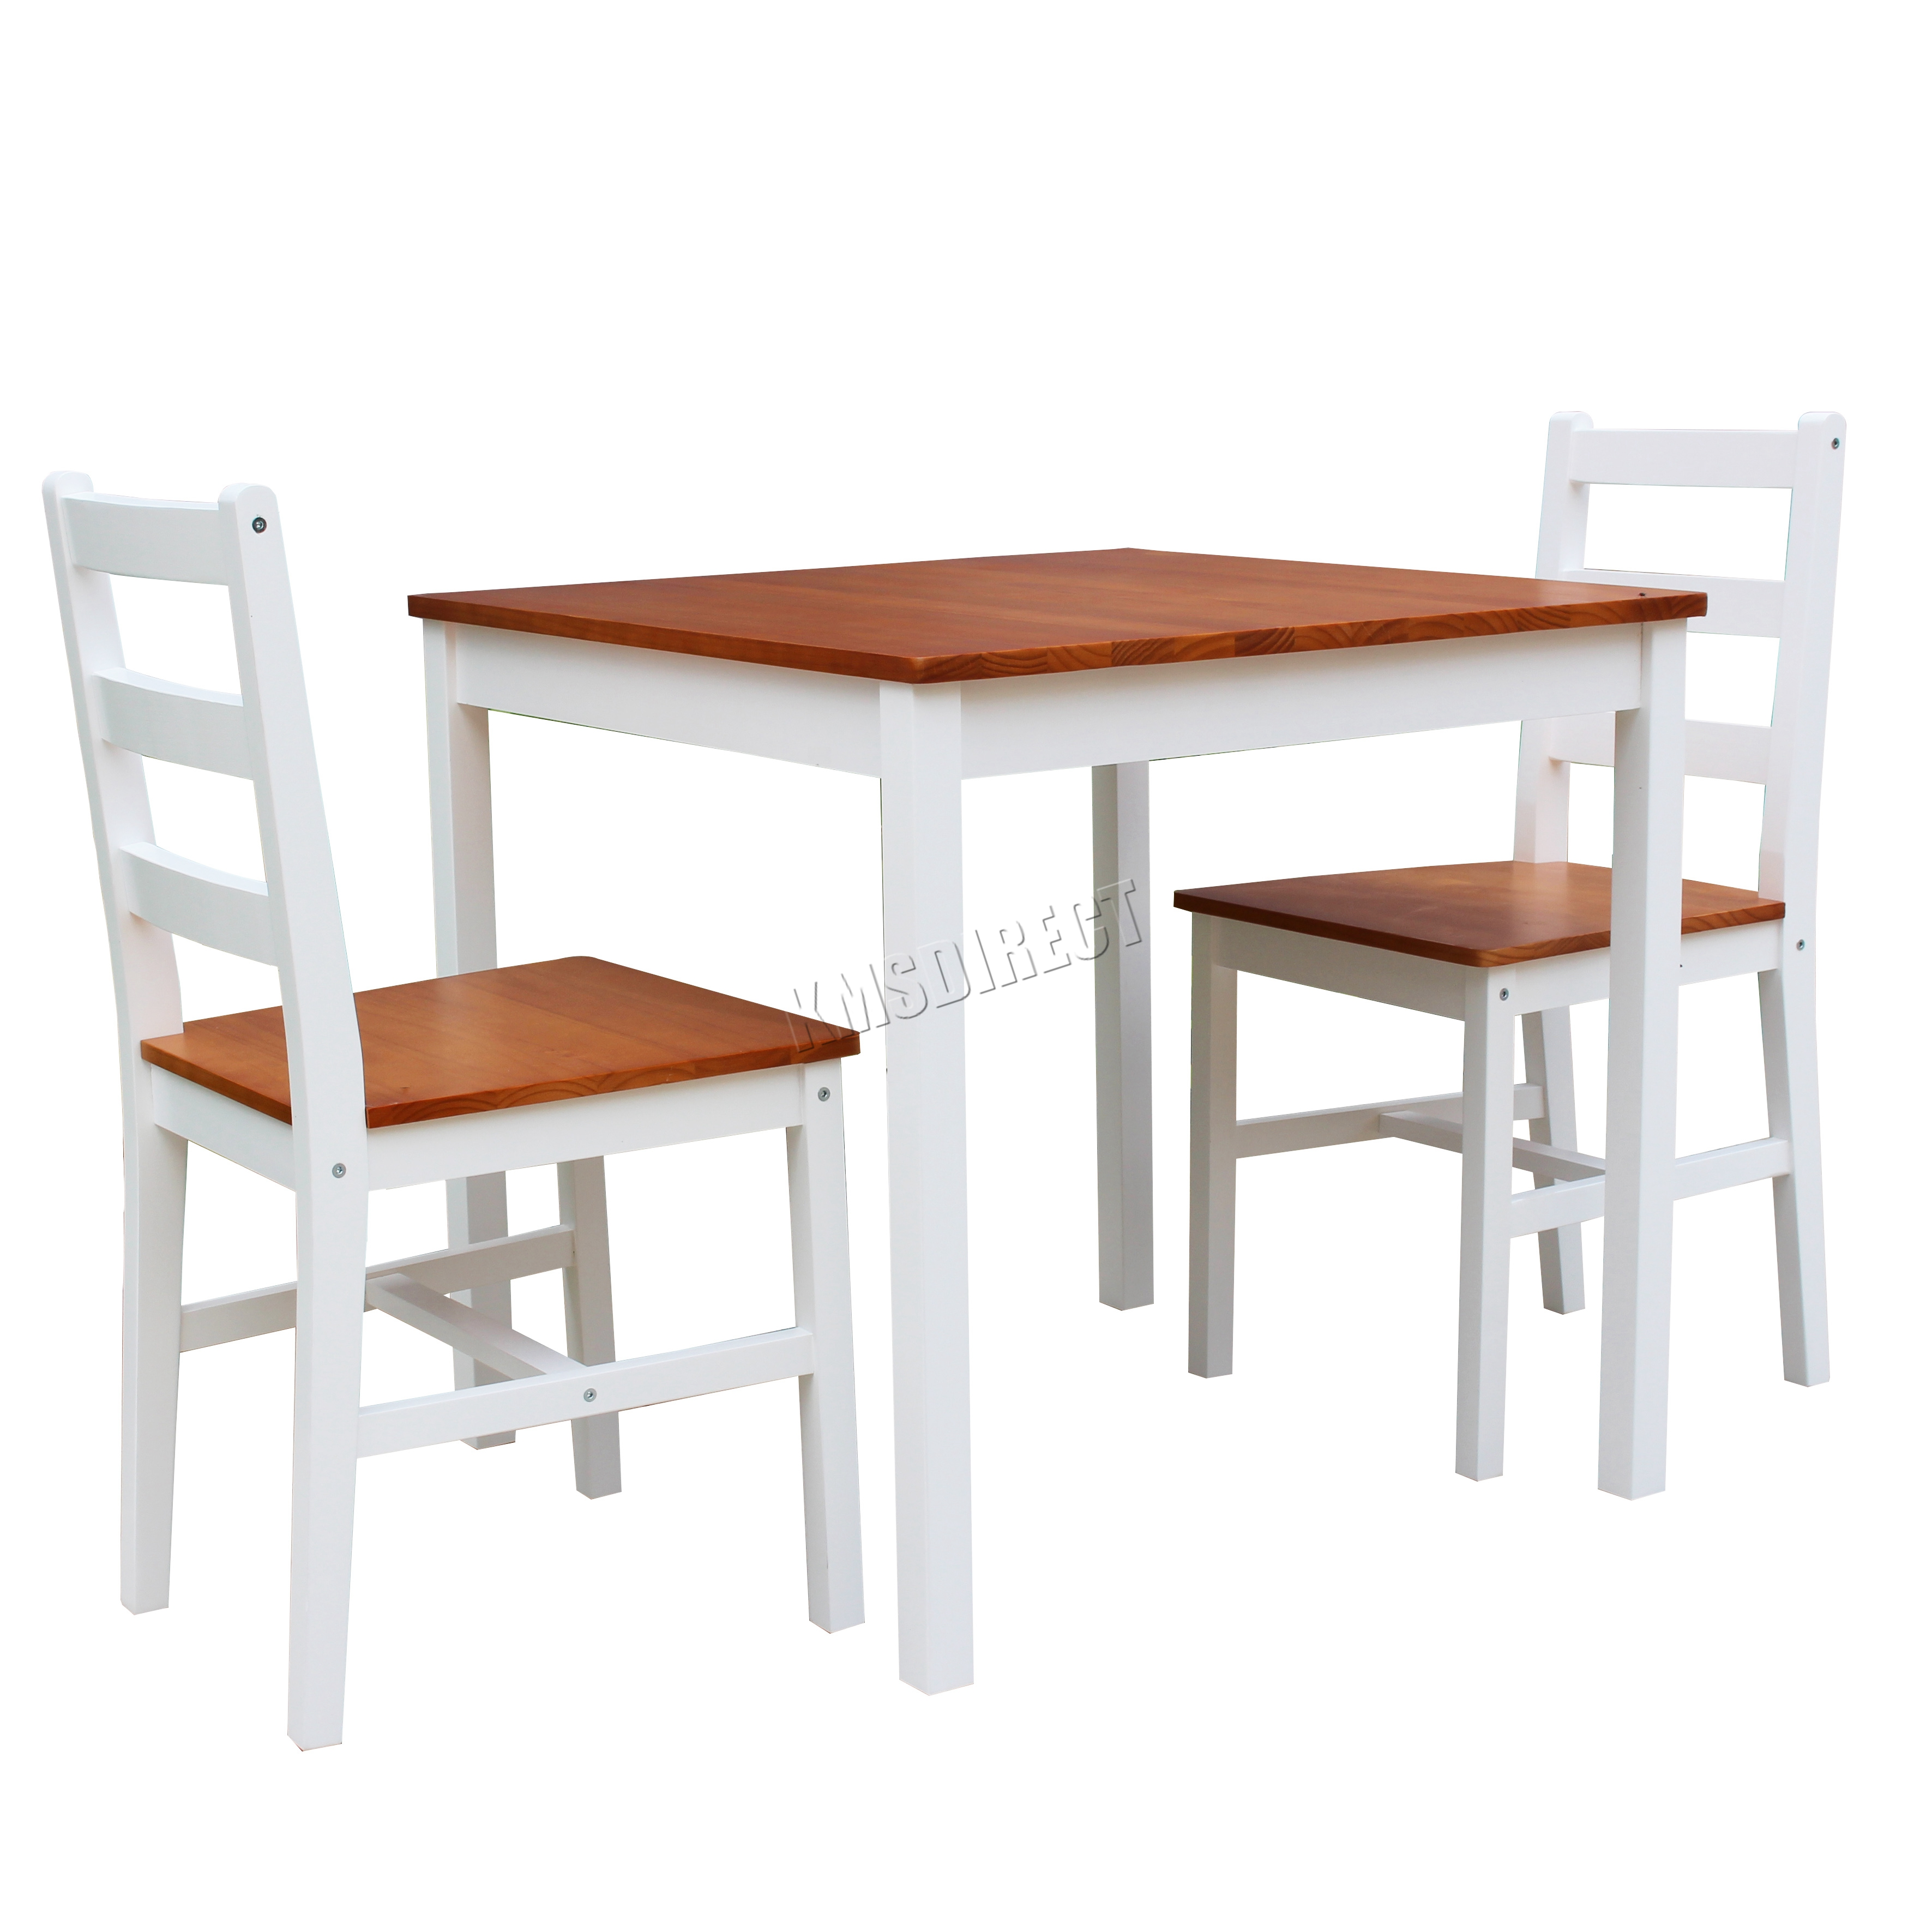 Details About Westwood Solid Pine Wood Dining Table With 2 Chairs Set Kitchen Furniture Honey